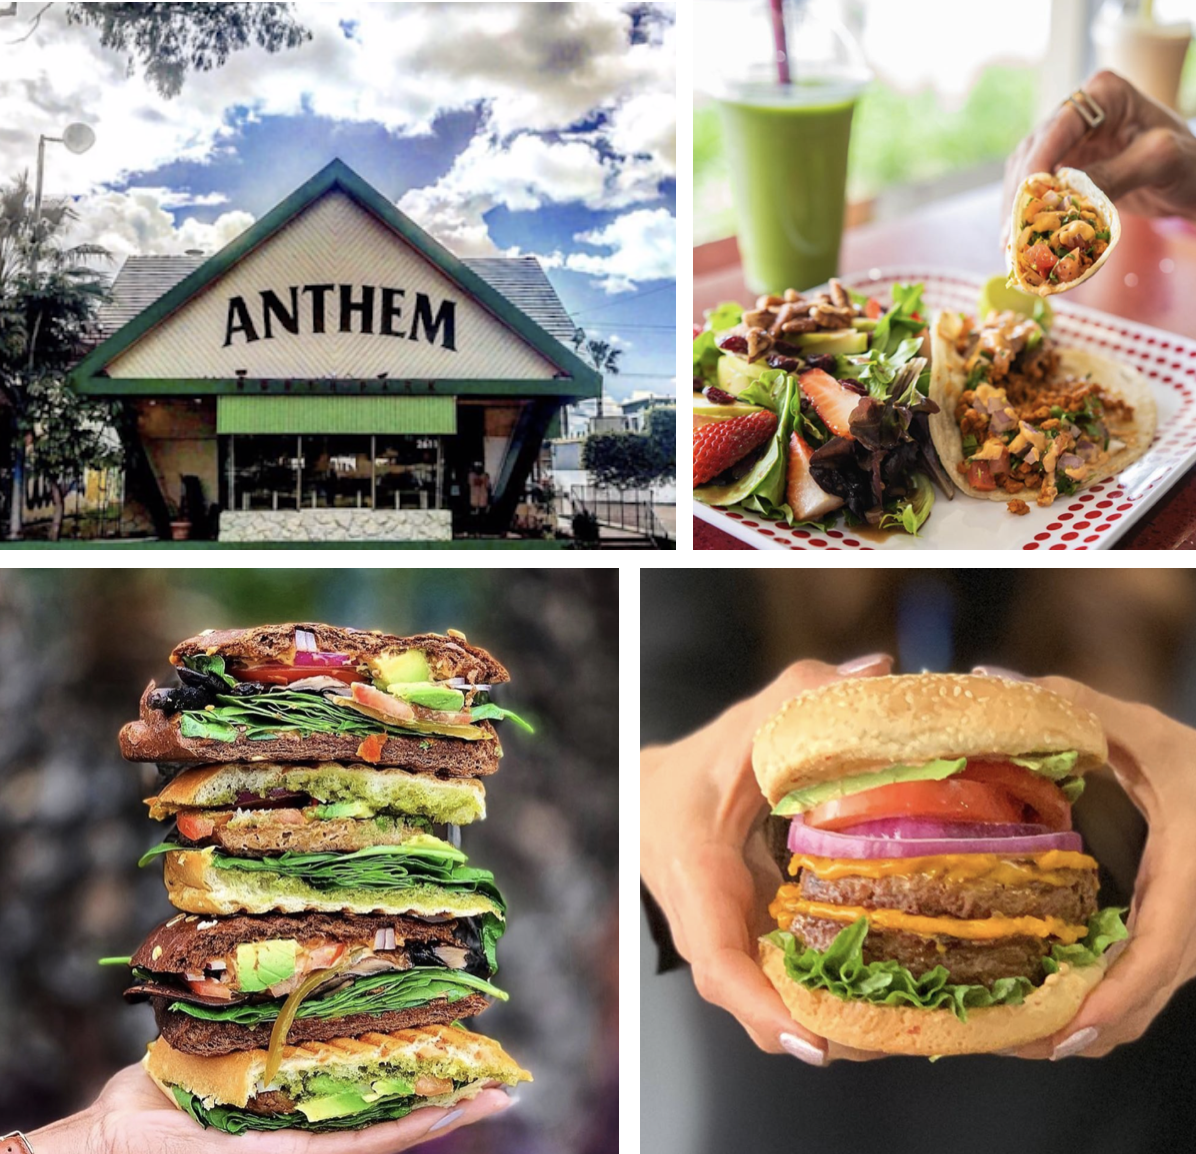 Anthem Kitchen And Bar: SanDiegoVille: Plant-Based The Village Mexican, Sushi